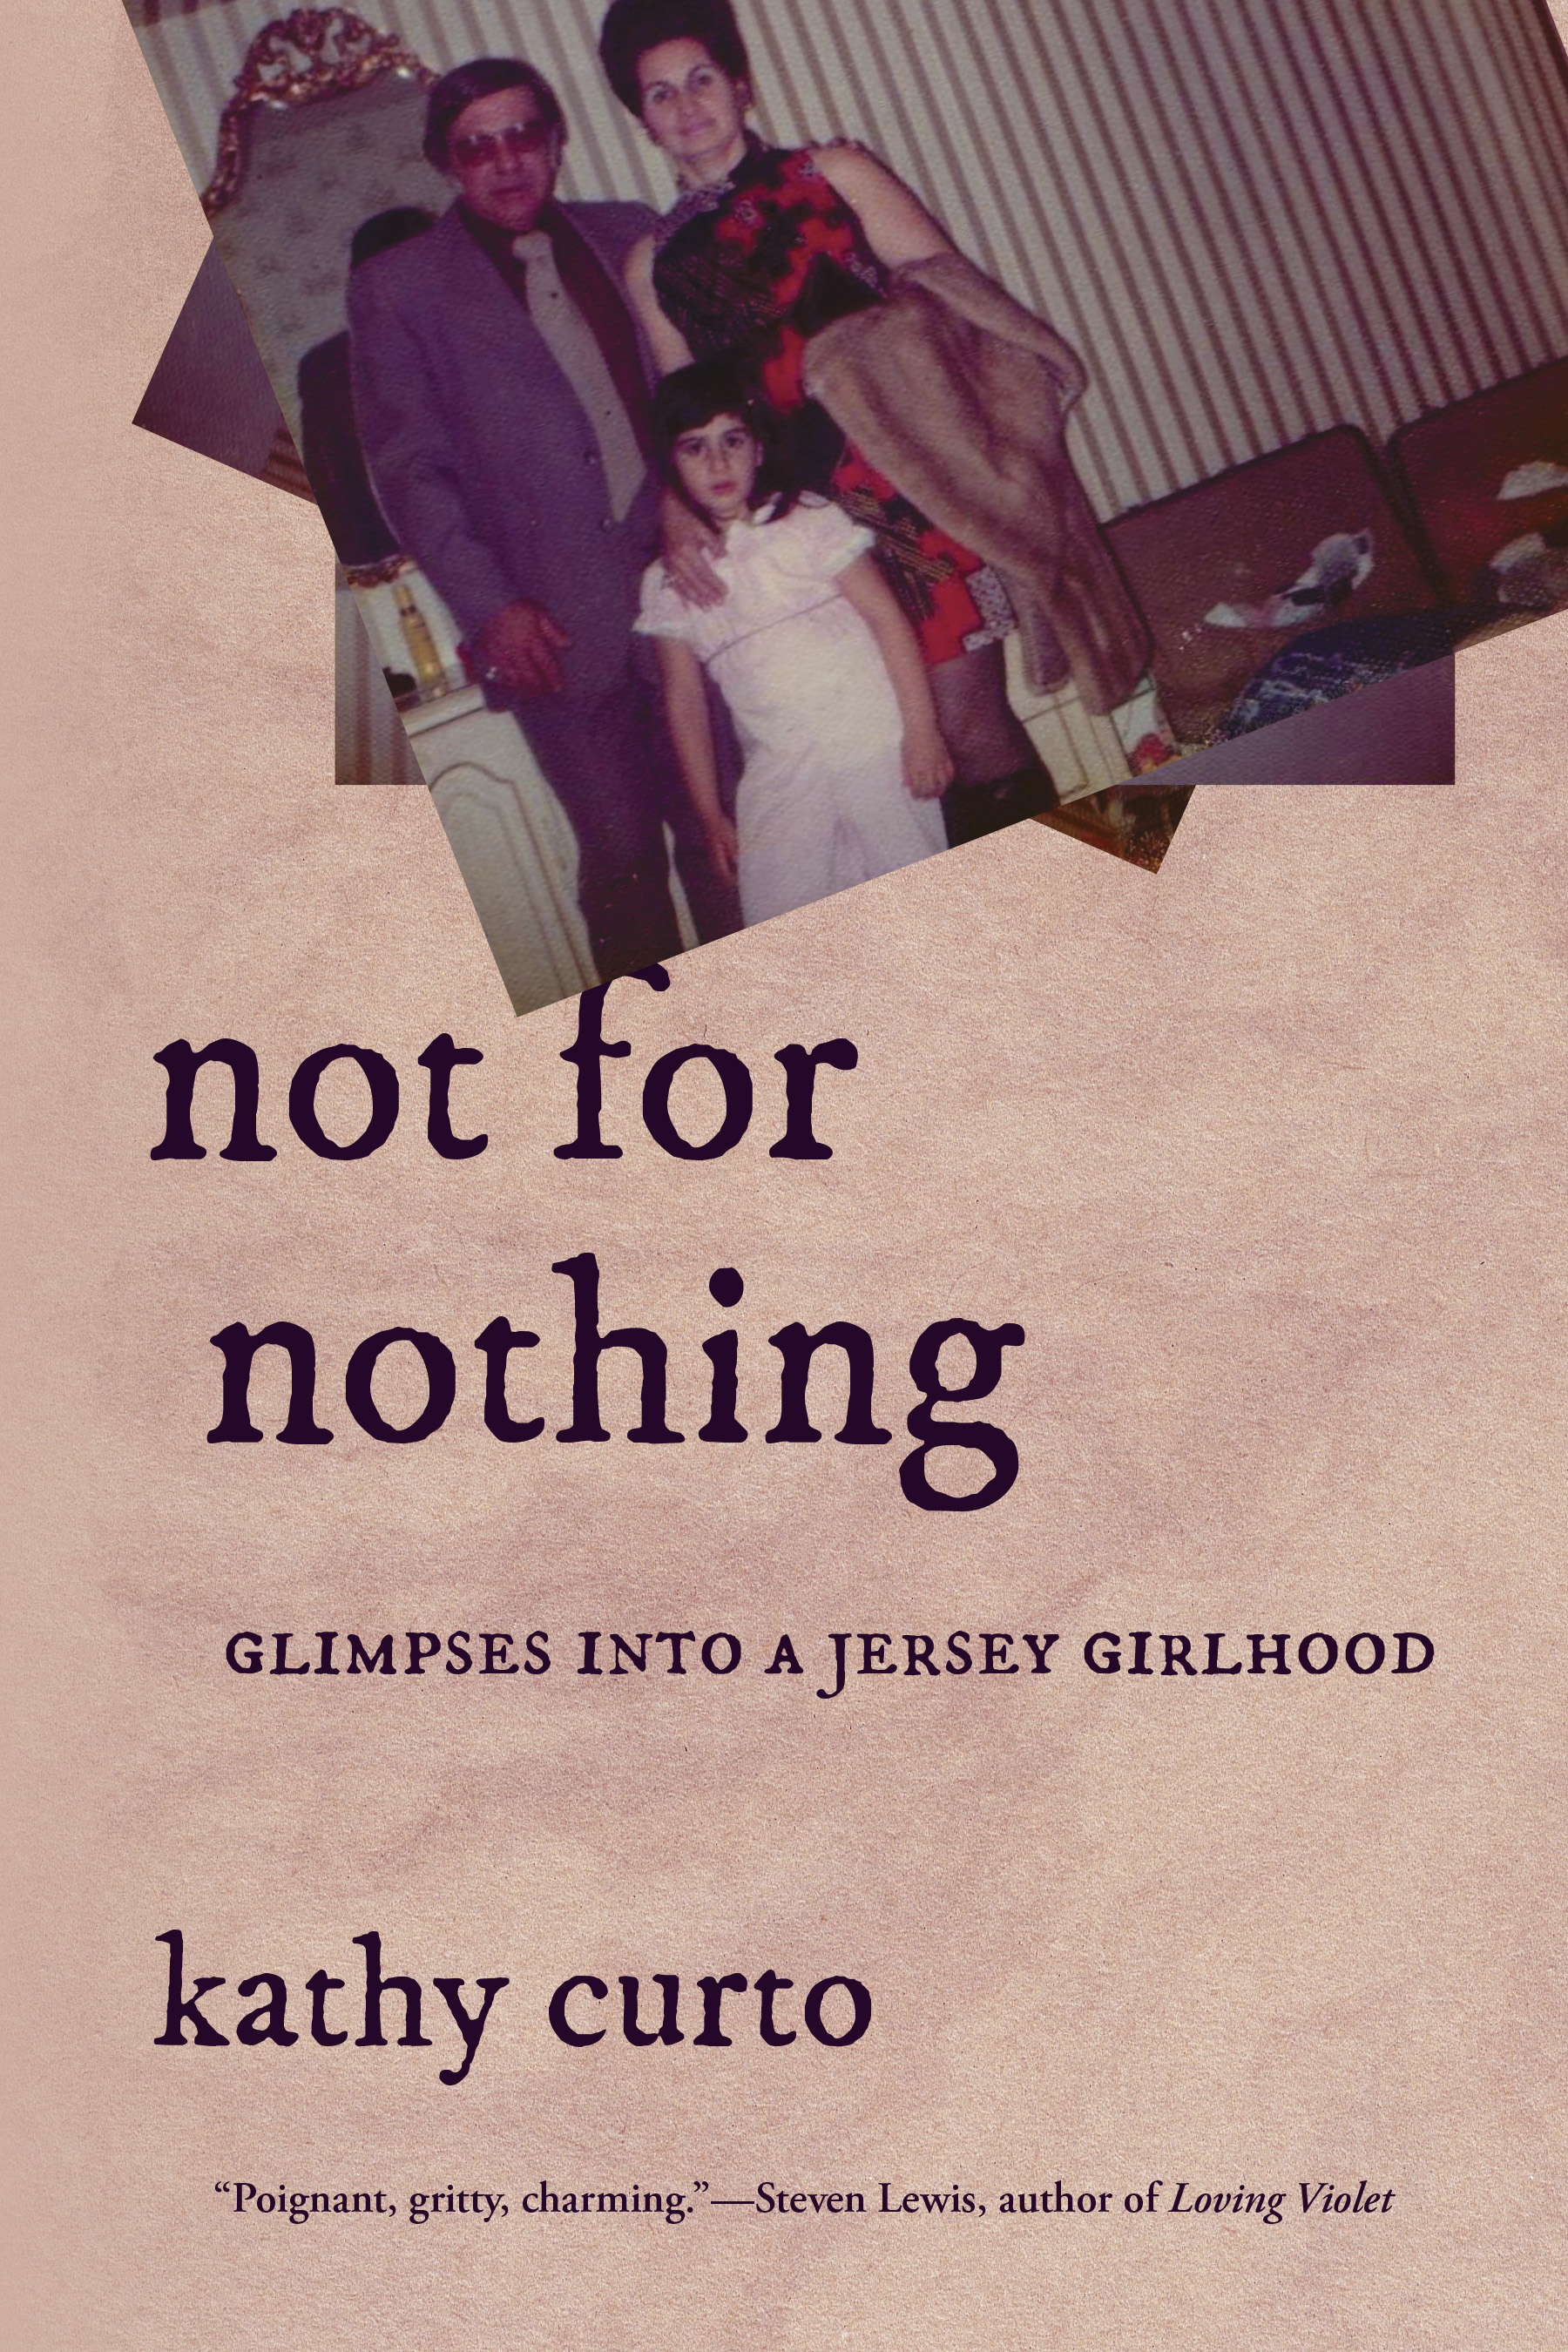 Not for Nothing by Kathy Curto (December 11, 2018; Bordighera Press)